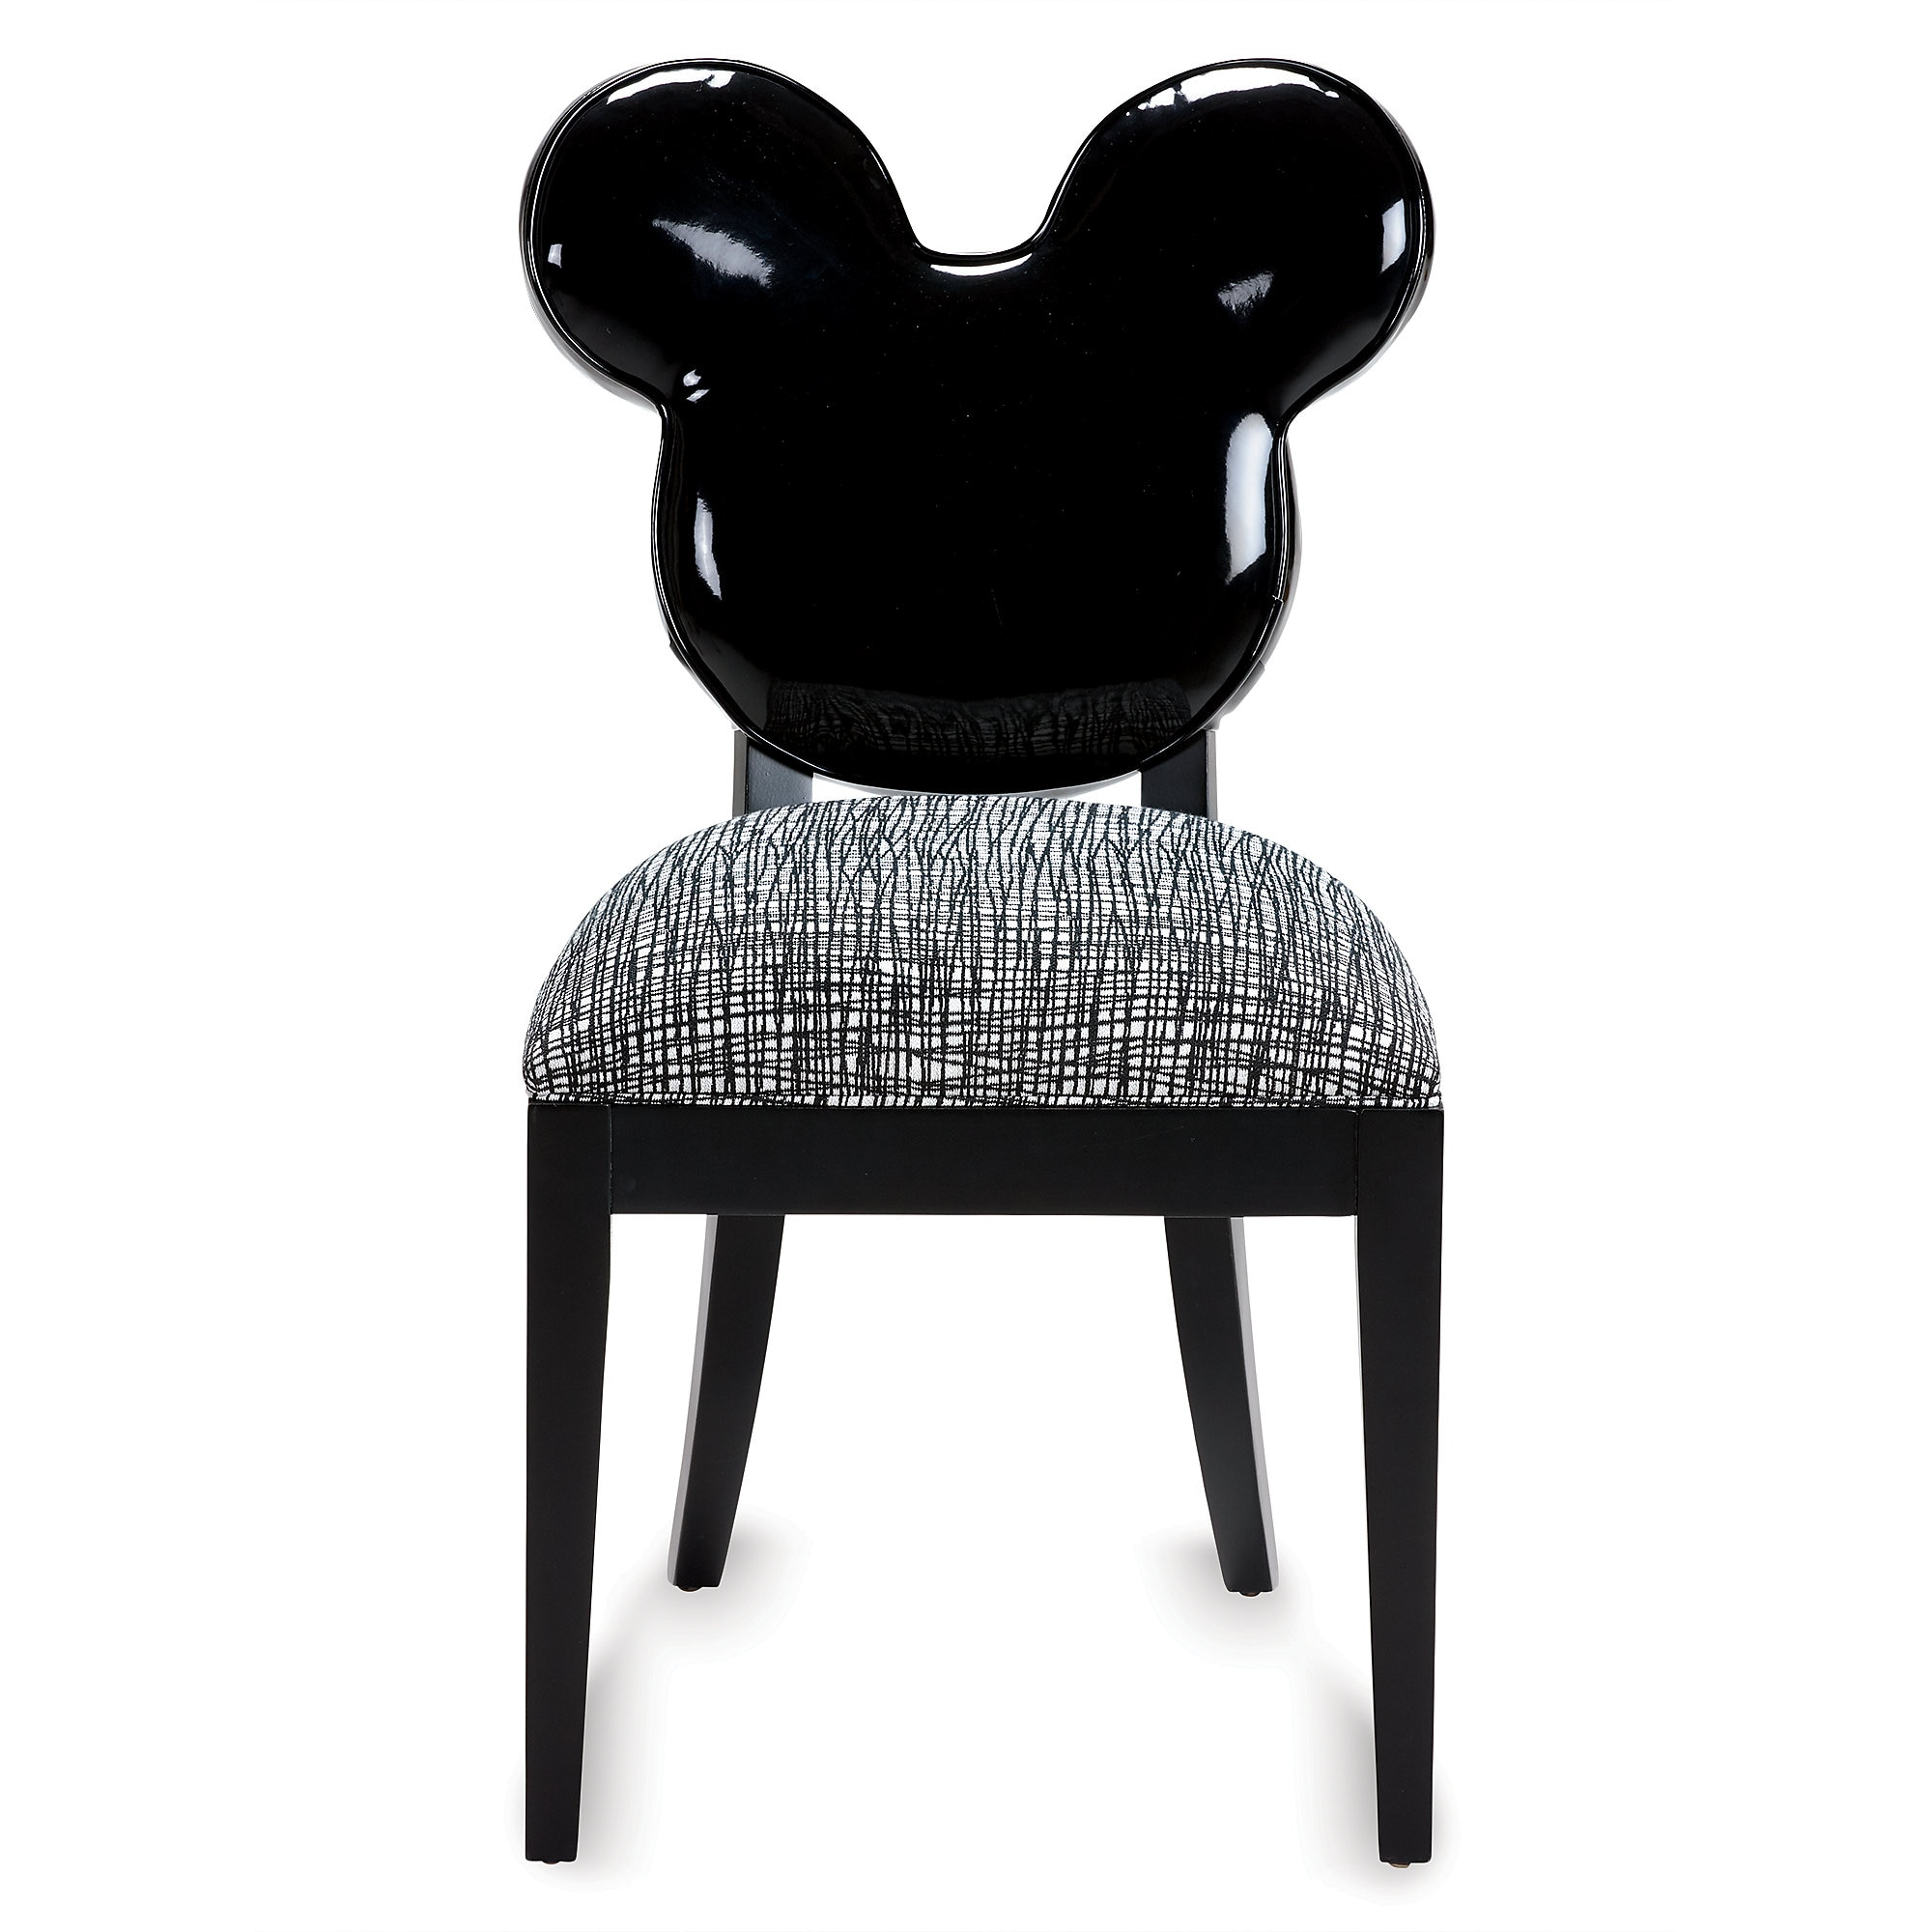 Mickey Mouse Everywhere Chair By Ethan Allen ShopDisney